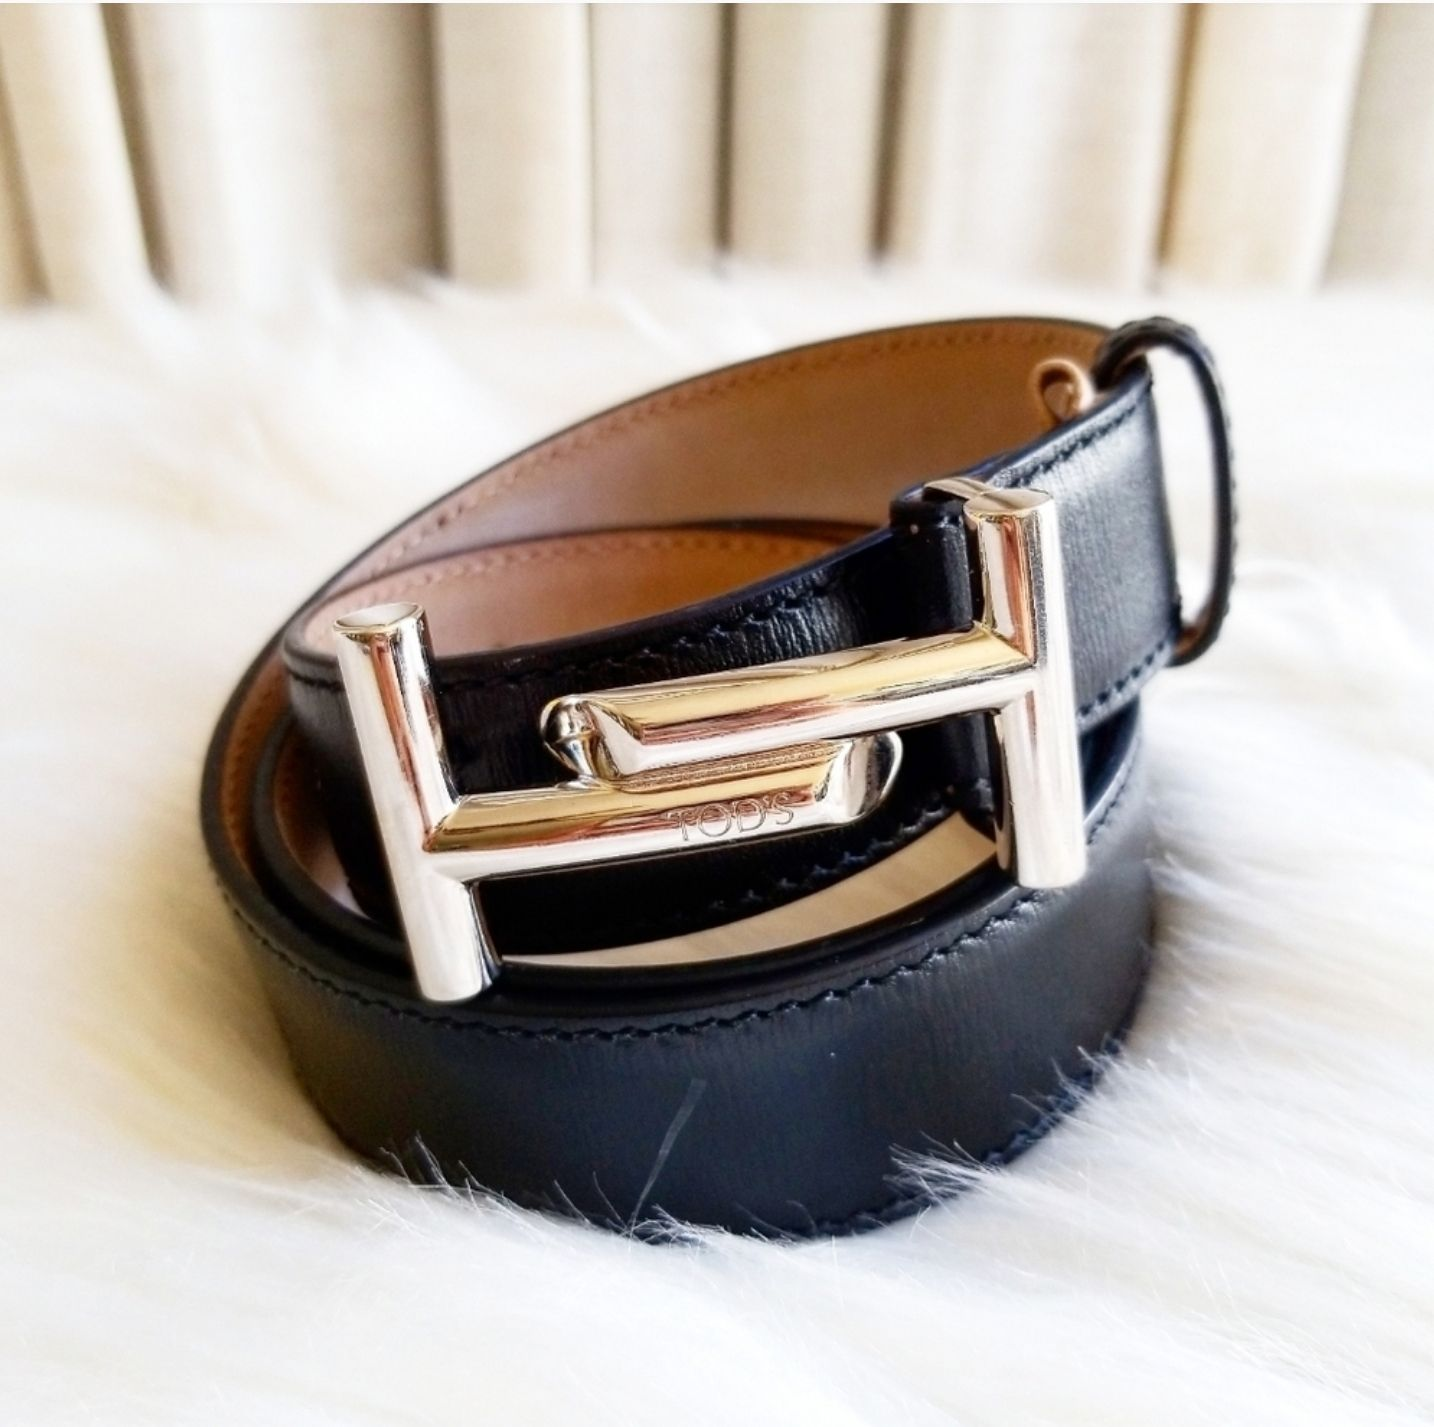 Tods Silver and BLACK leather Belt